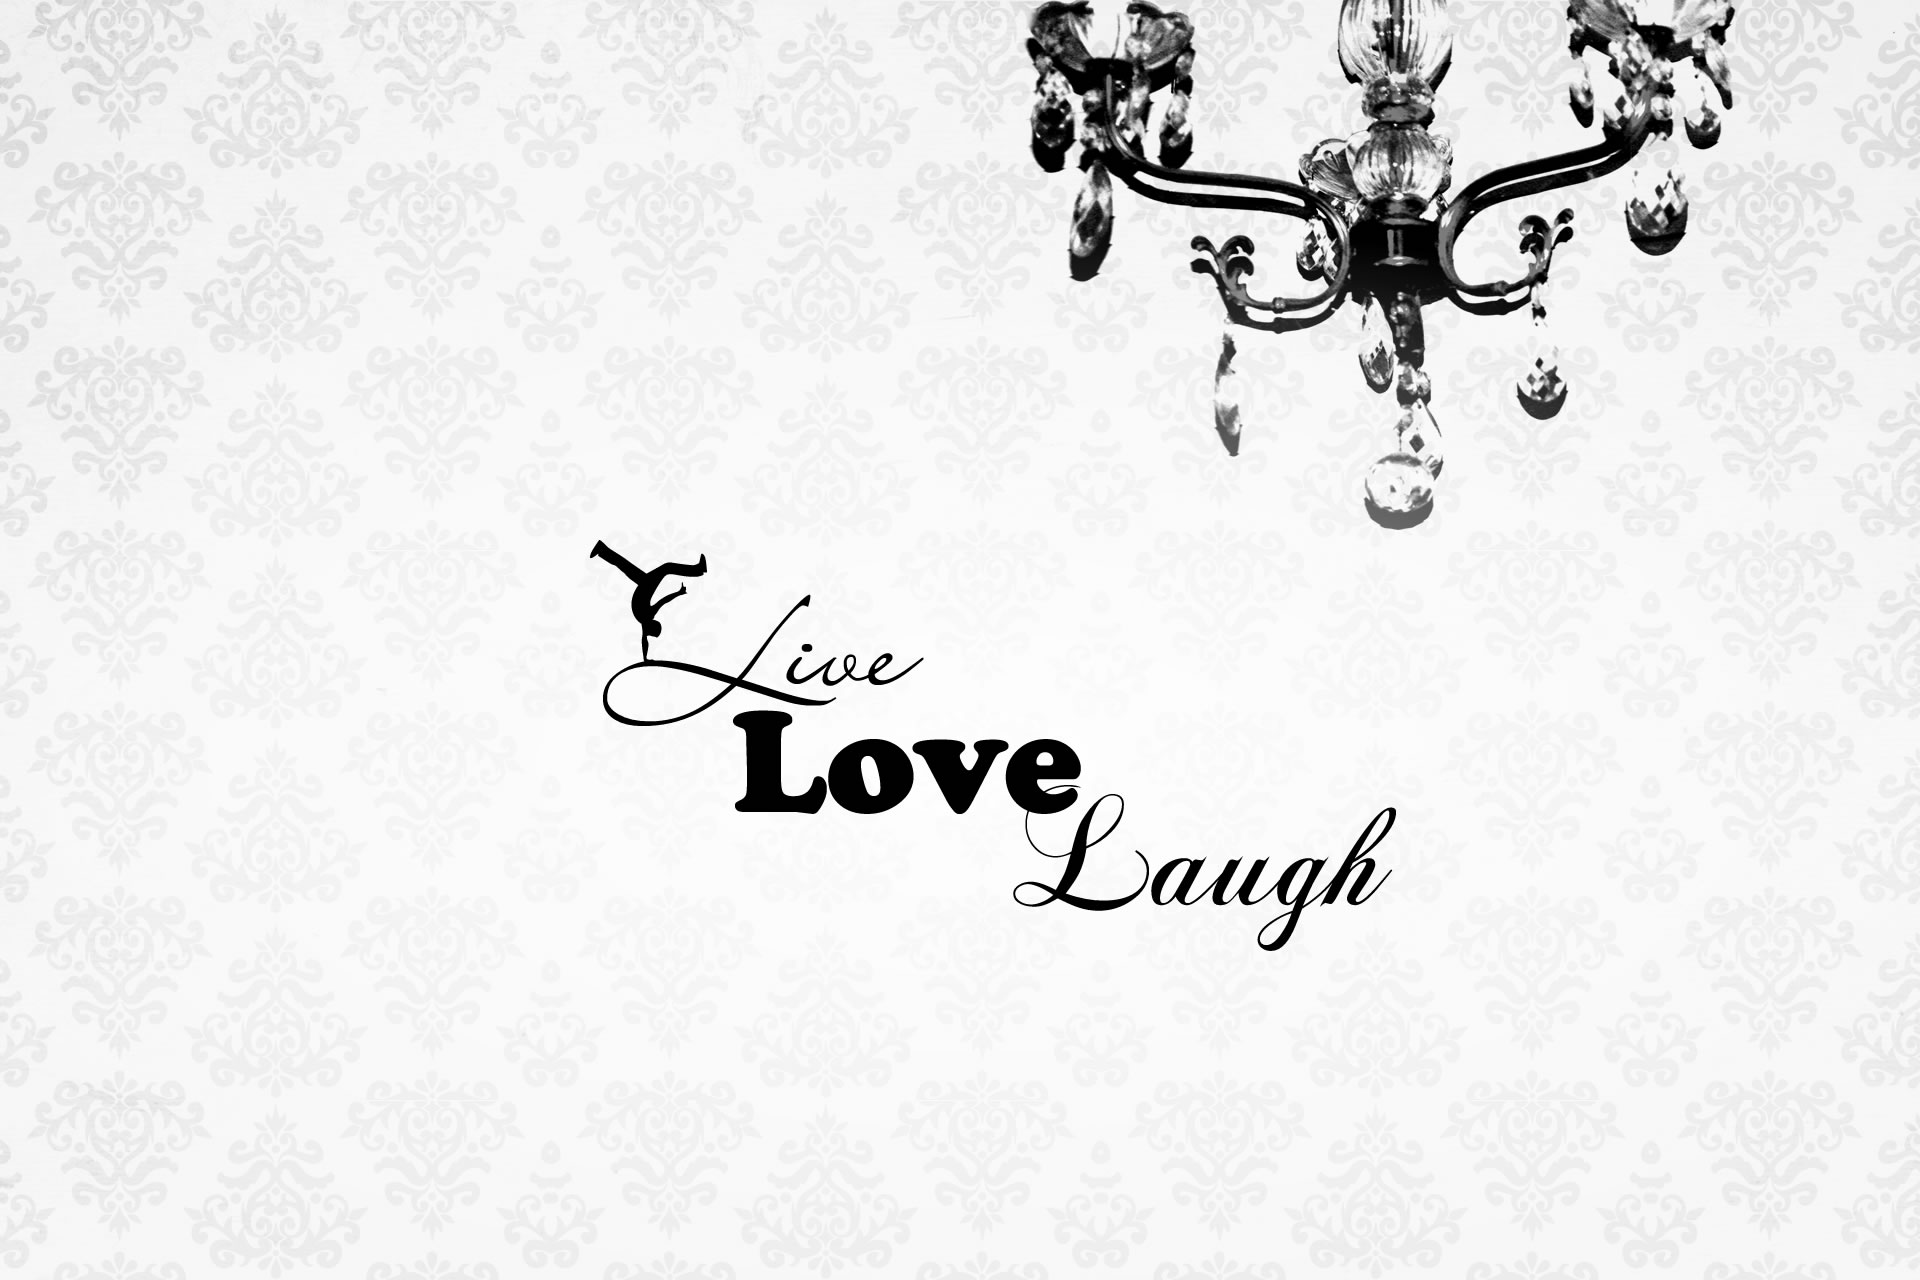 Live Love Laugh Quotes Love Quotes Live Wallpaper Live Love Laugh Uploaded.